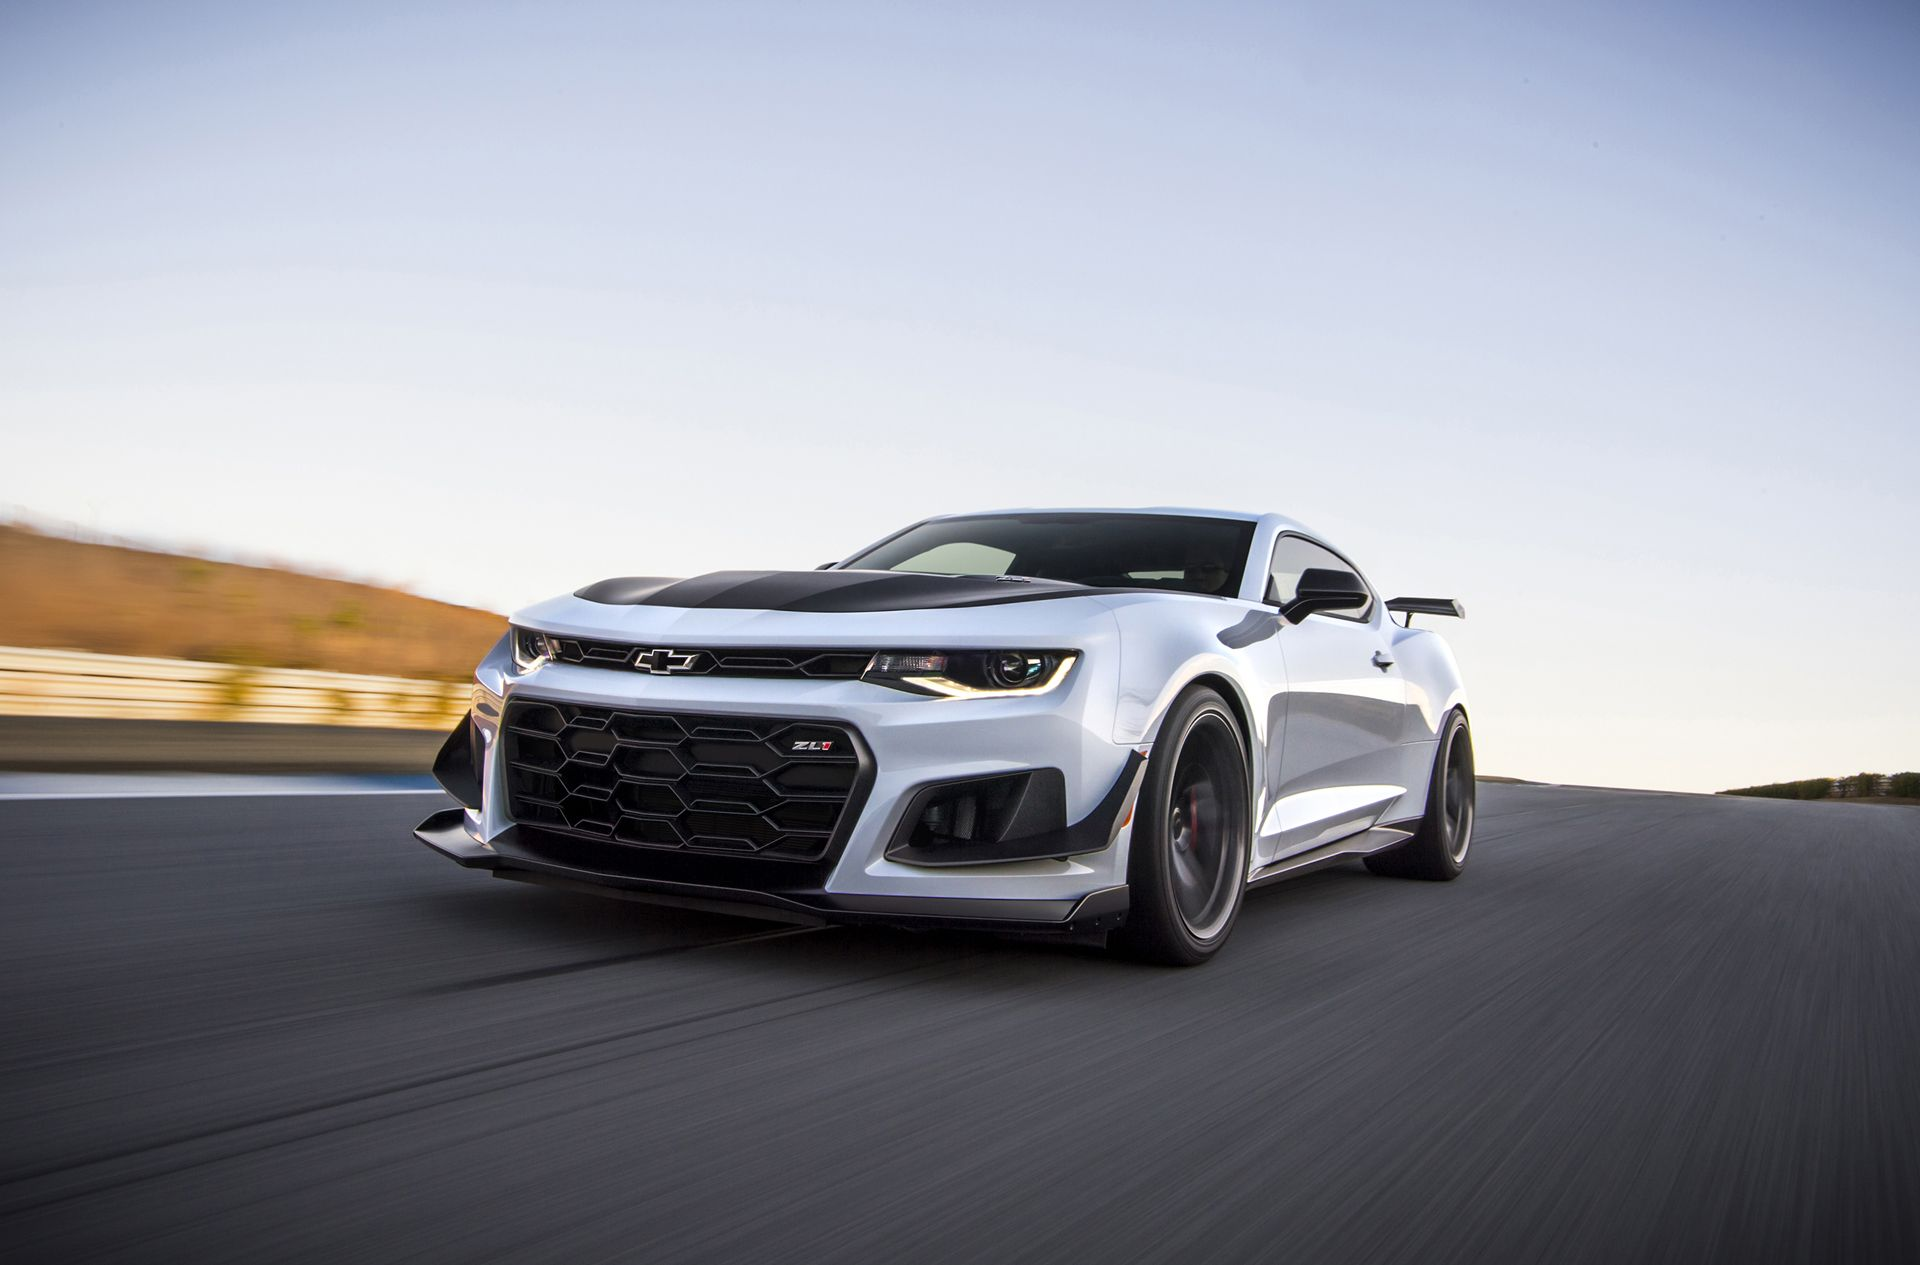 chevy camaro zl1 1le is too dangerous to be sold in europe love on rh pinterest com